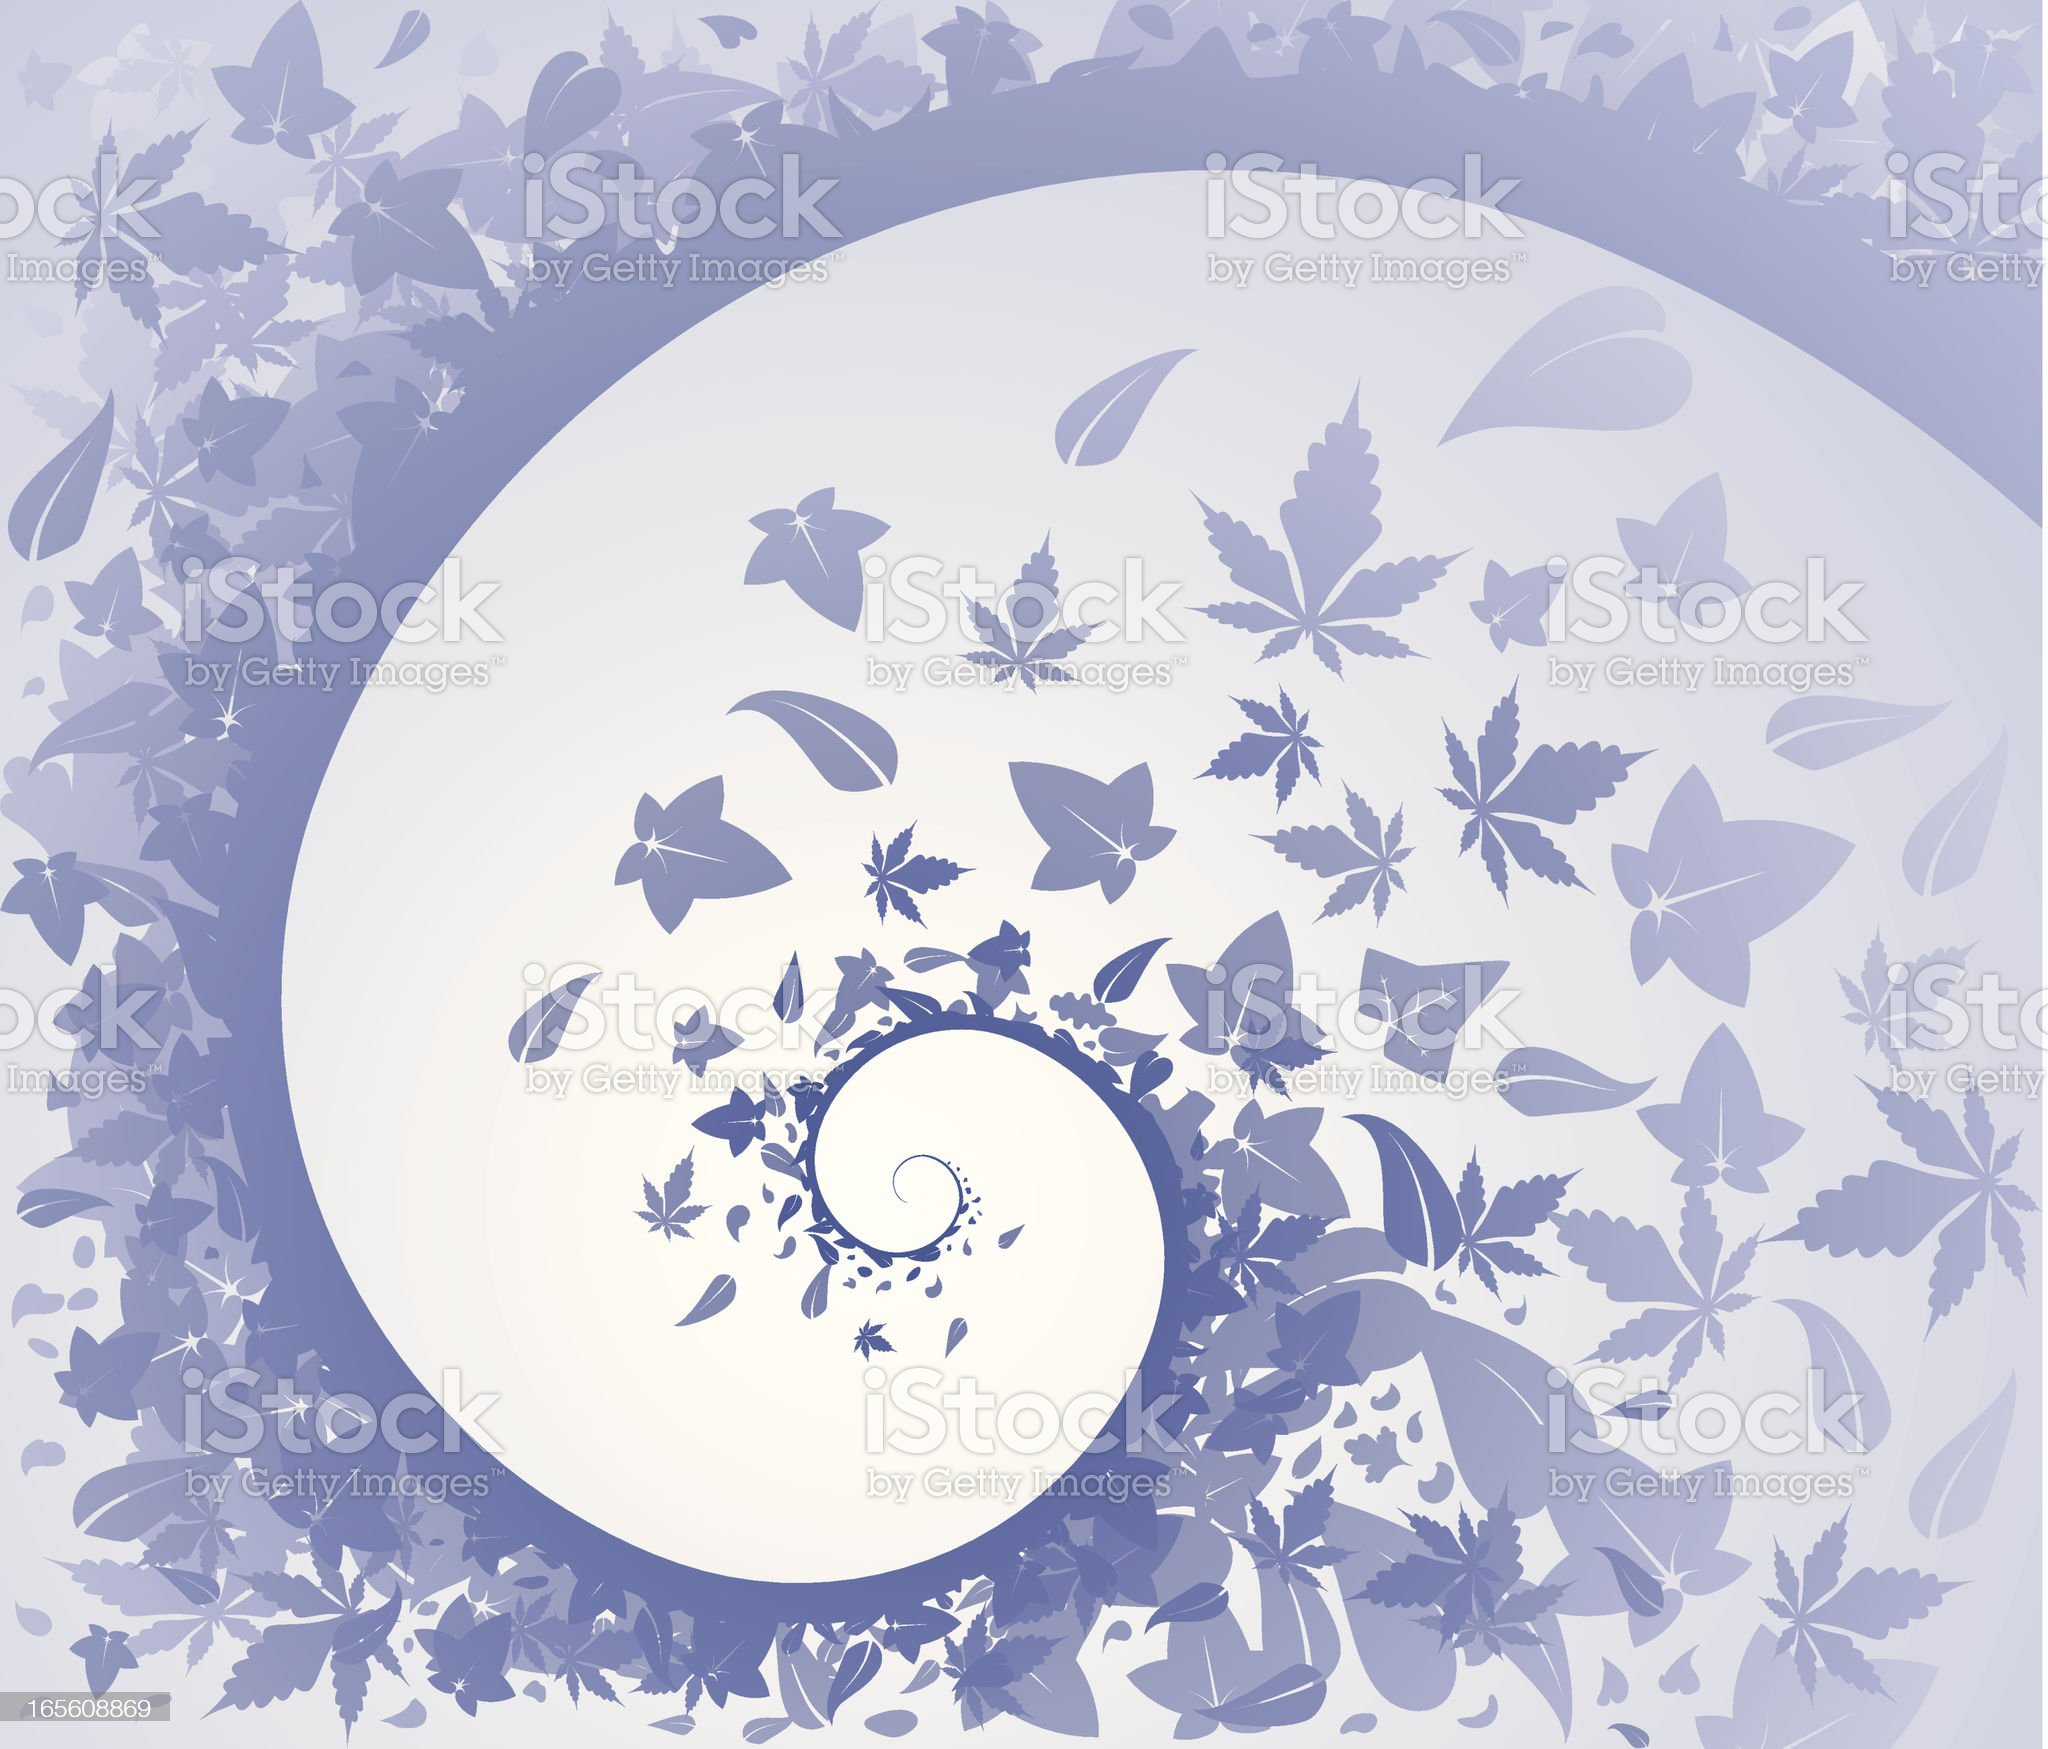 Spiral Leaves royalty-free stock vector art